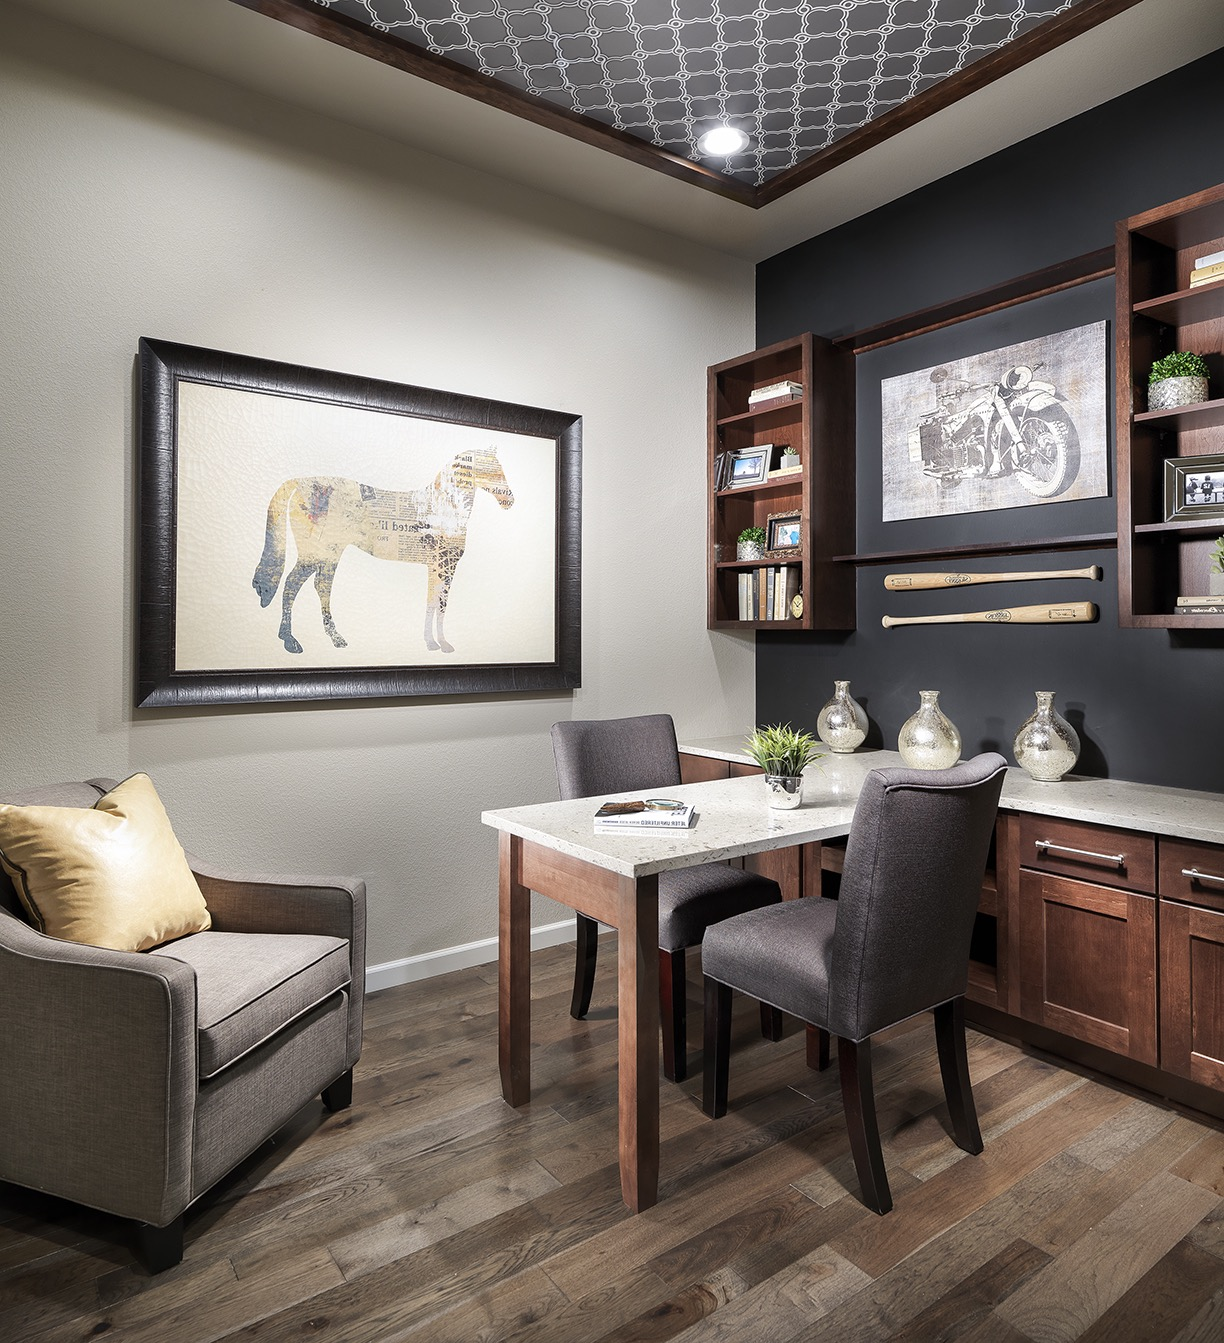 Neutral Transitional Home Office With Black Accent Wall (Image 13 of 17)